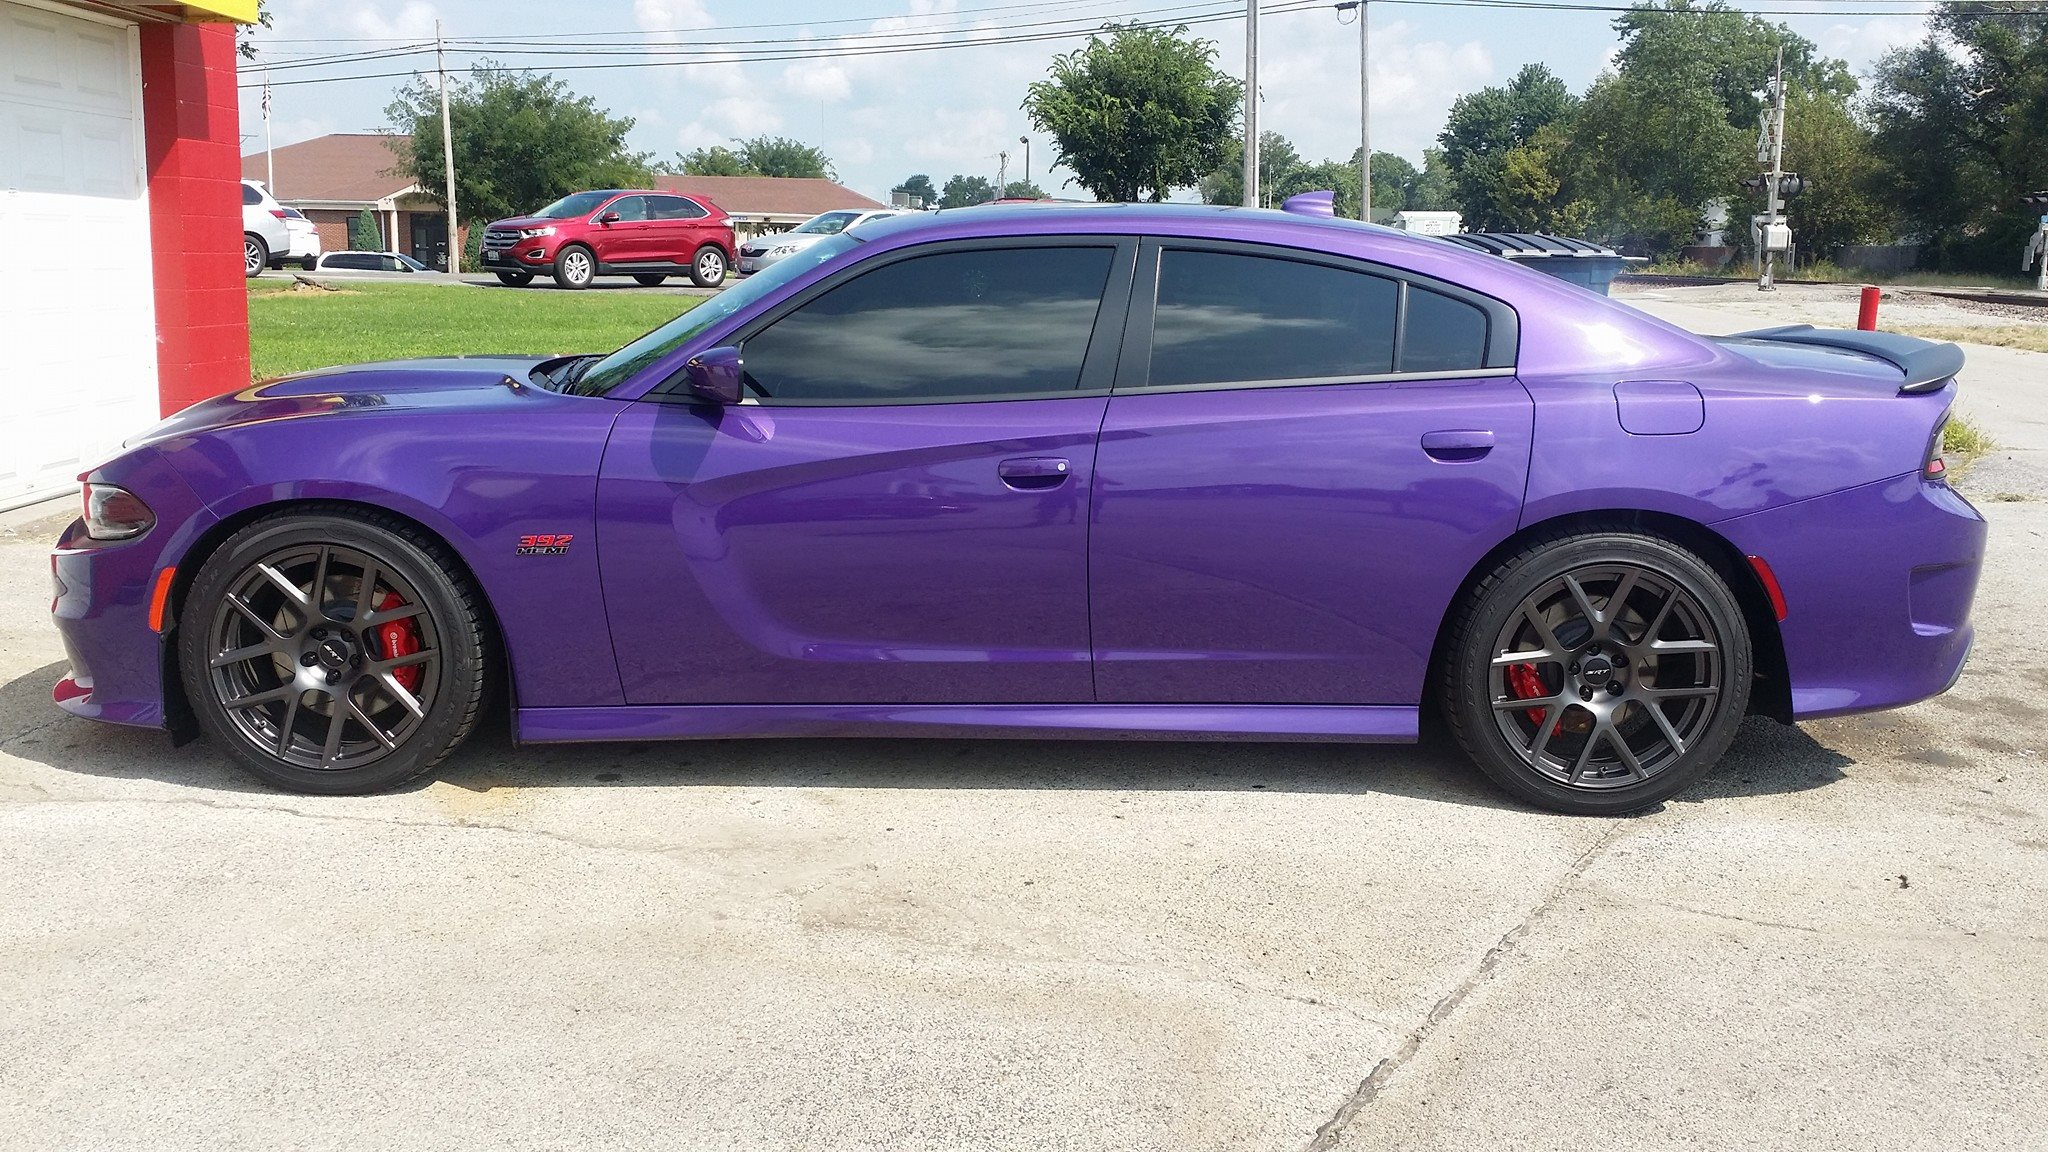 2015 Dodge Charger Scat Pack For Sale >> FOR SALE 2016 Purple Charger Scat Pack